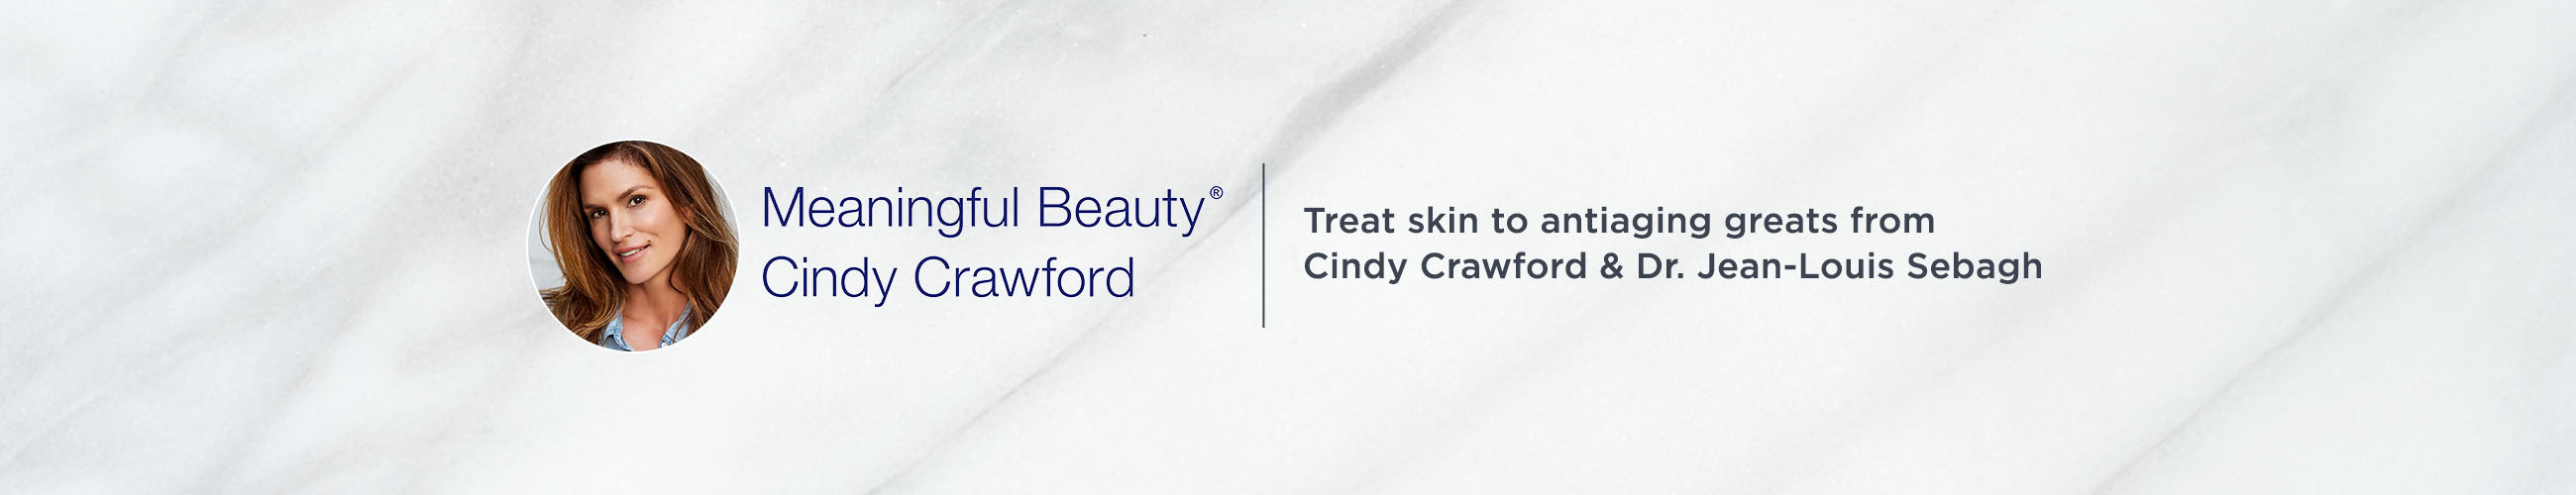 Meaningful Beauty Cindy Crawford - Treat skin to antiaging greats from Cindy Crawford & Dr. Jean-Louis Sebagh